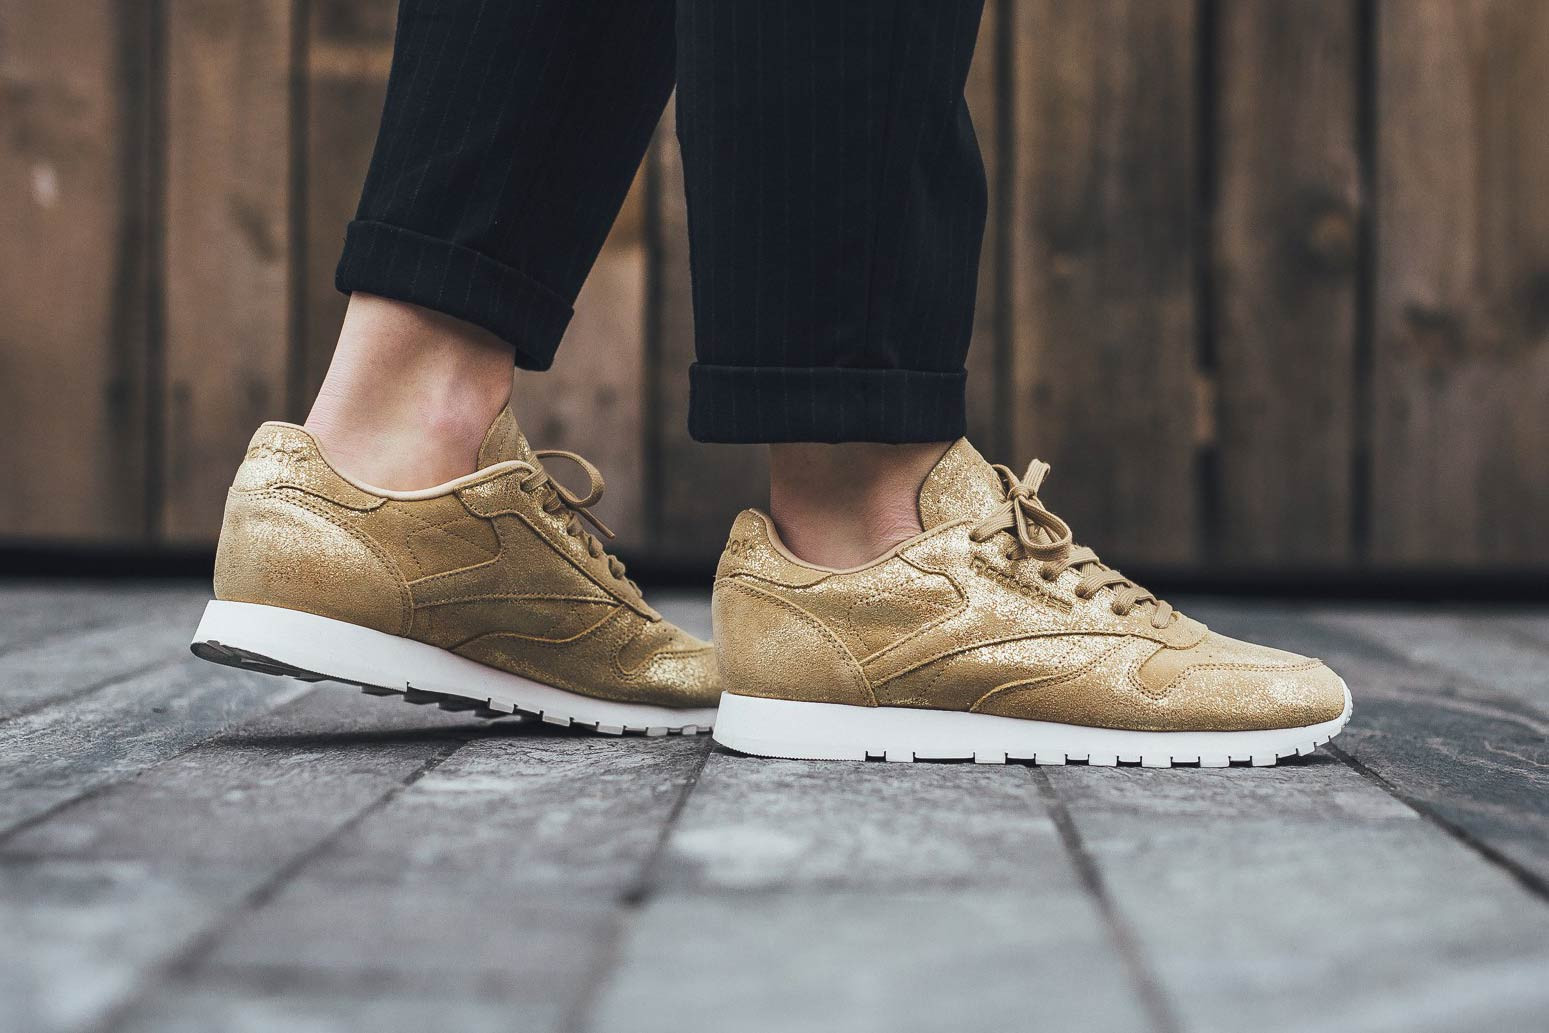 Reebok Classic Leather Shimmer in Gold